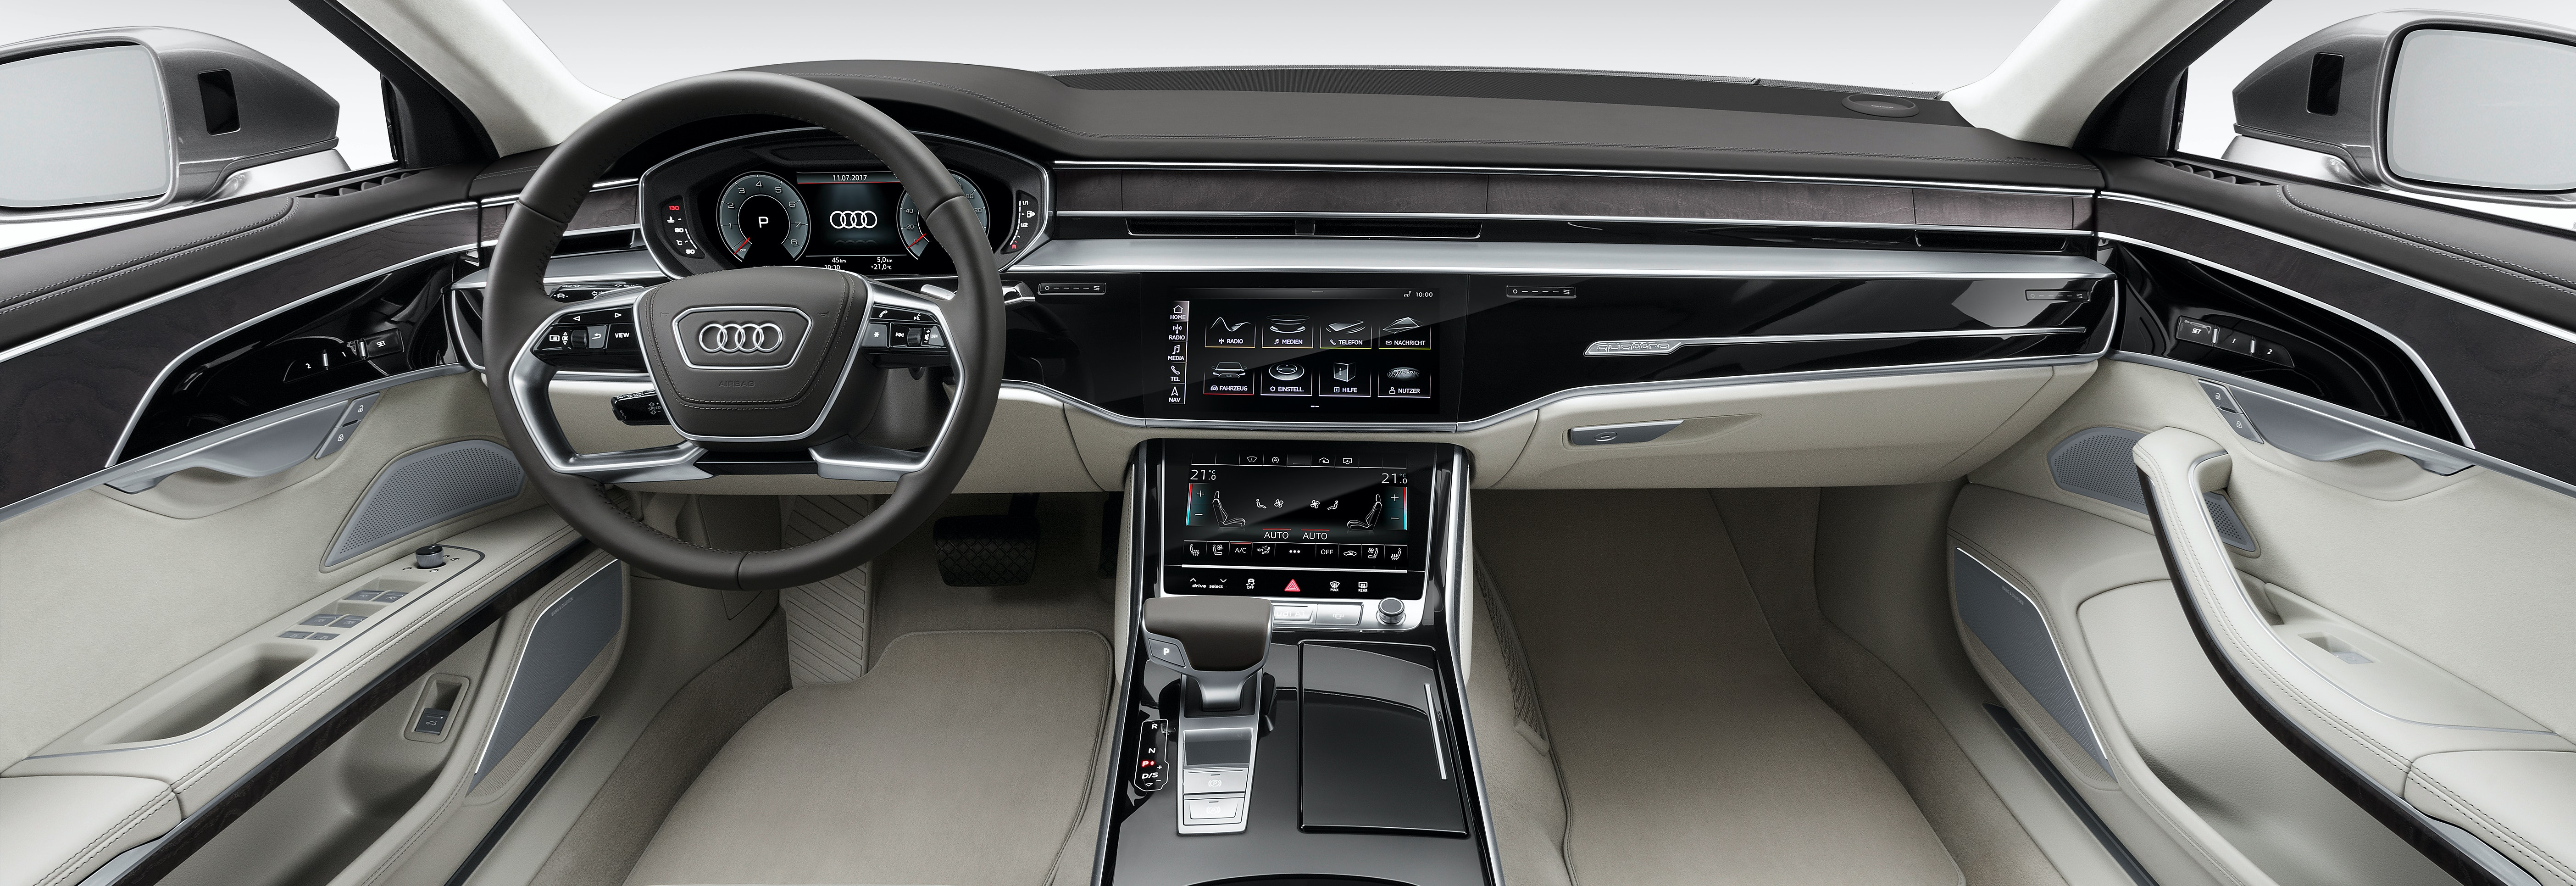 New 2018 Audi A7 Amp Rs7 Price Specs And Release Date Carwow